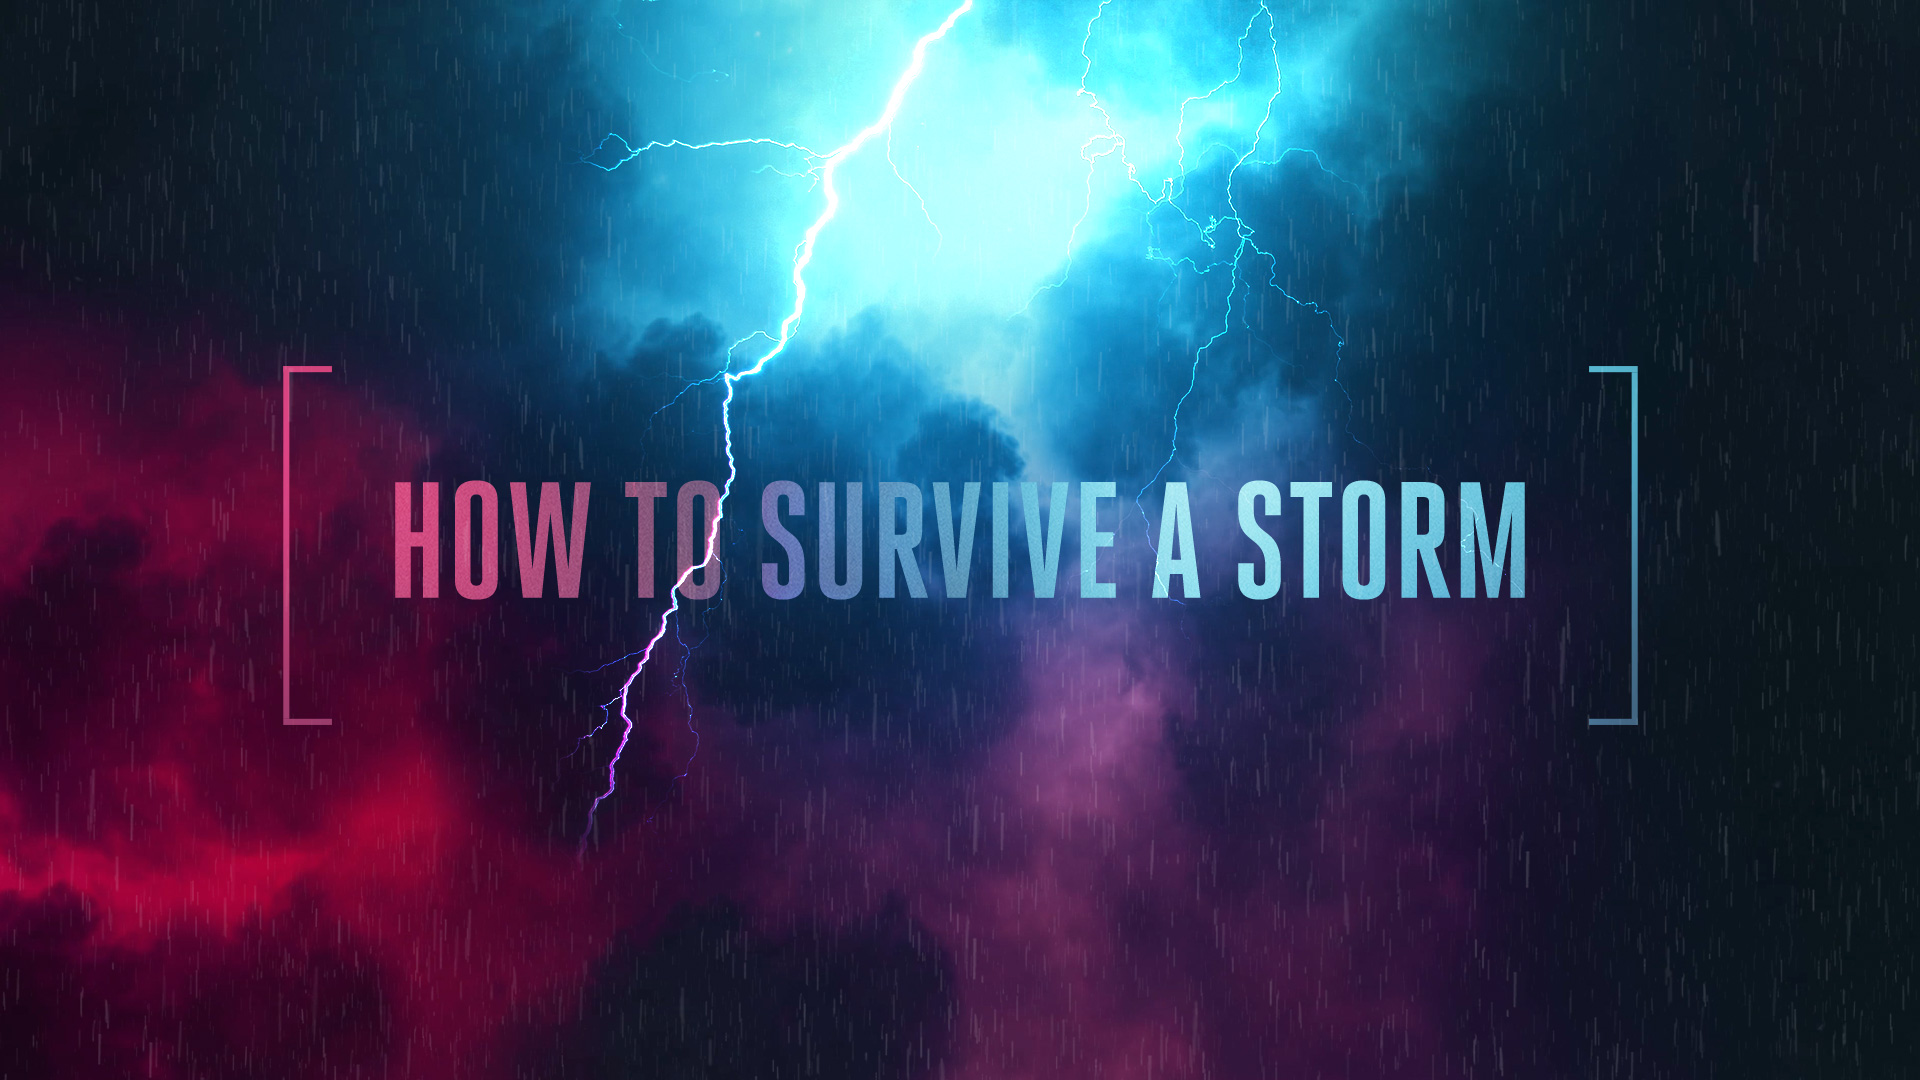 How to Survive a Storm